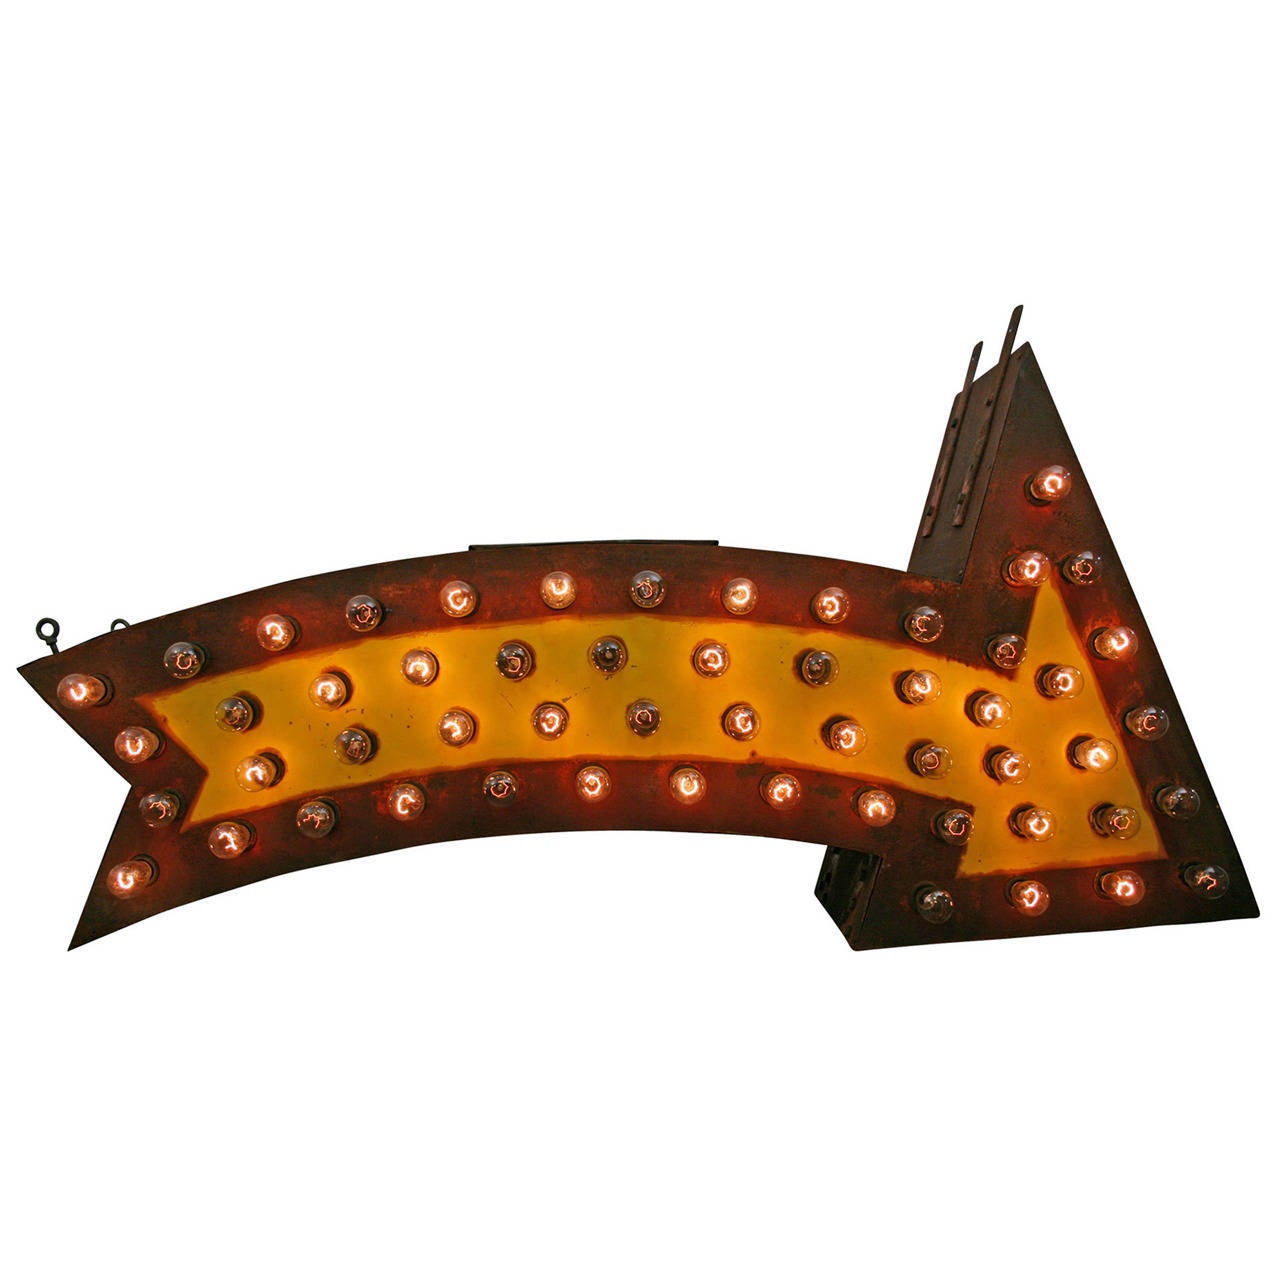 Perfectly Aged Lighted Carnival Arrow, circa 1950 1